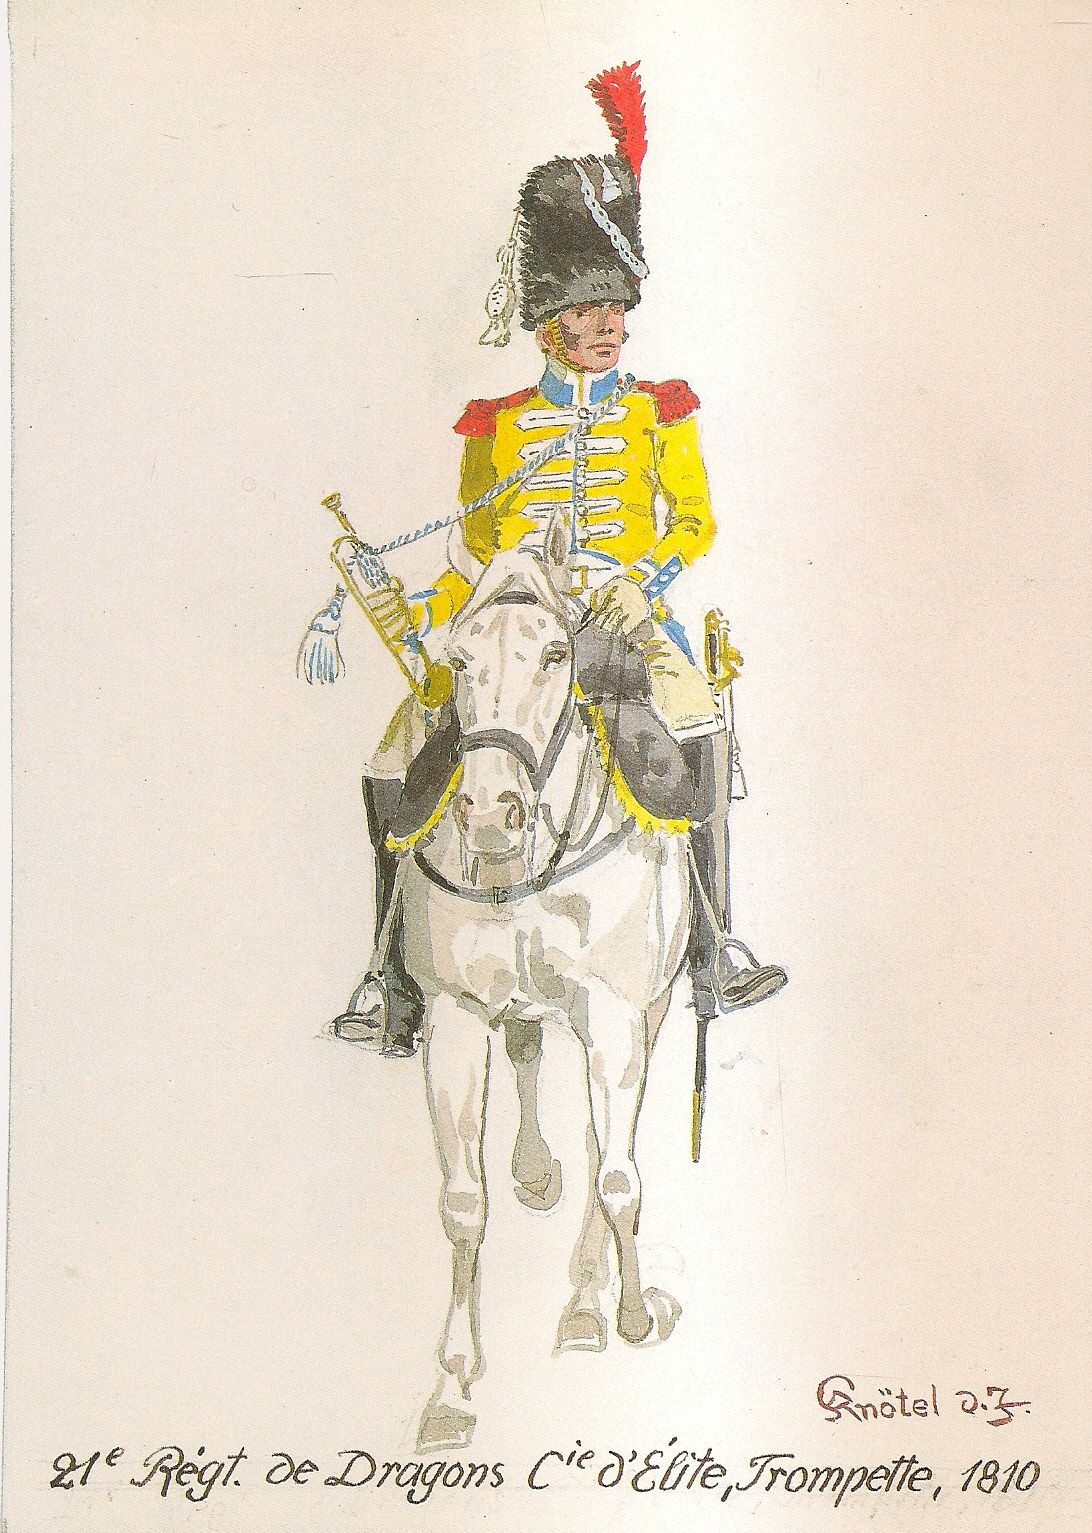 French; 21st Dragoons, Elite Company, Trumpeter, 1810 by H.Knotel